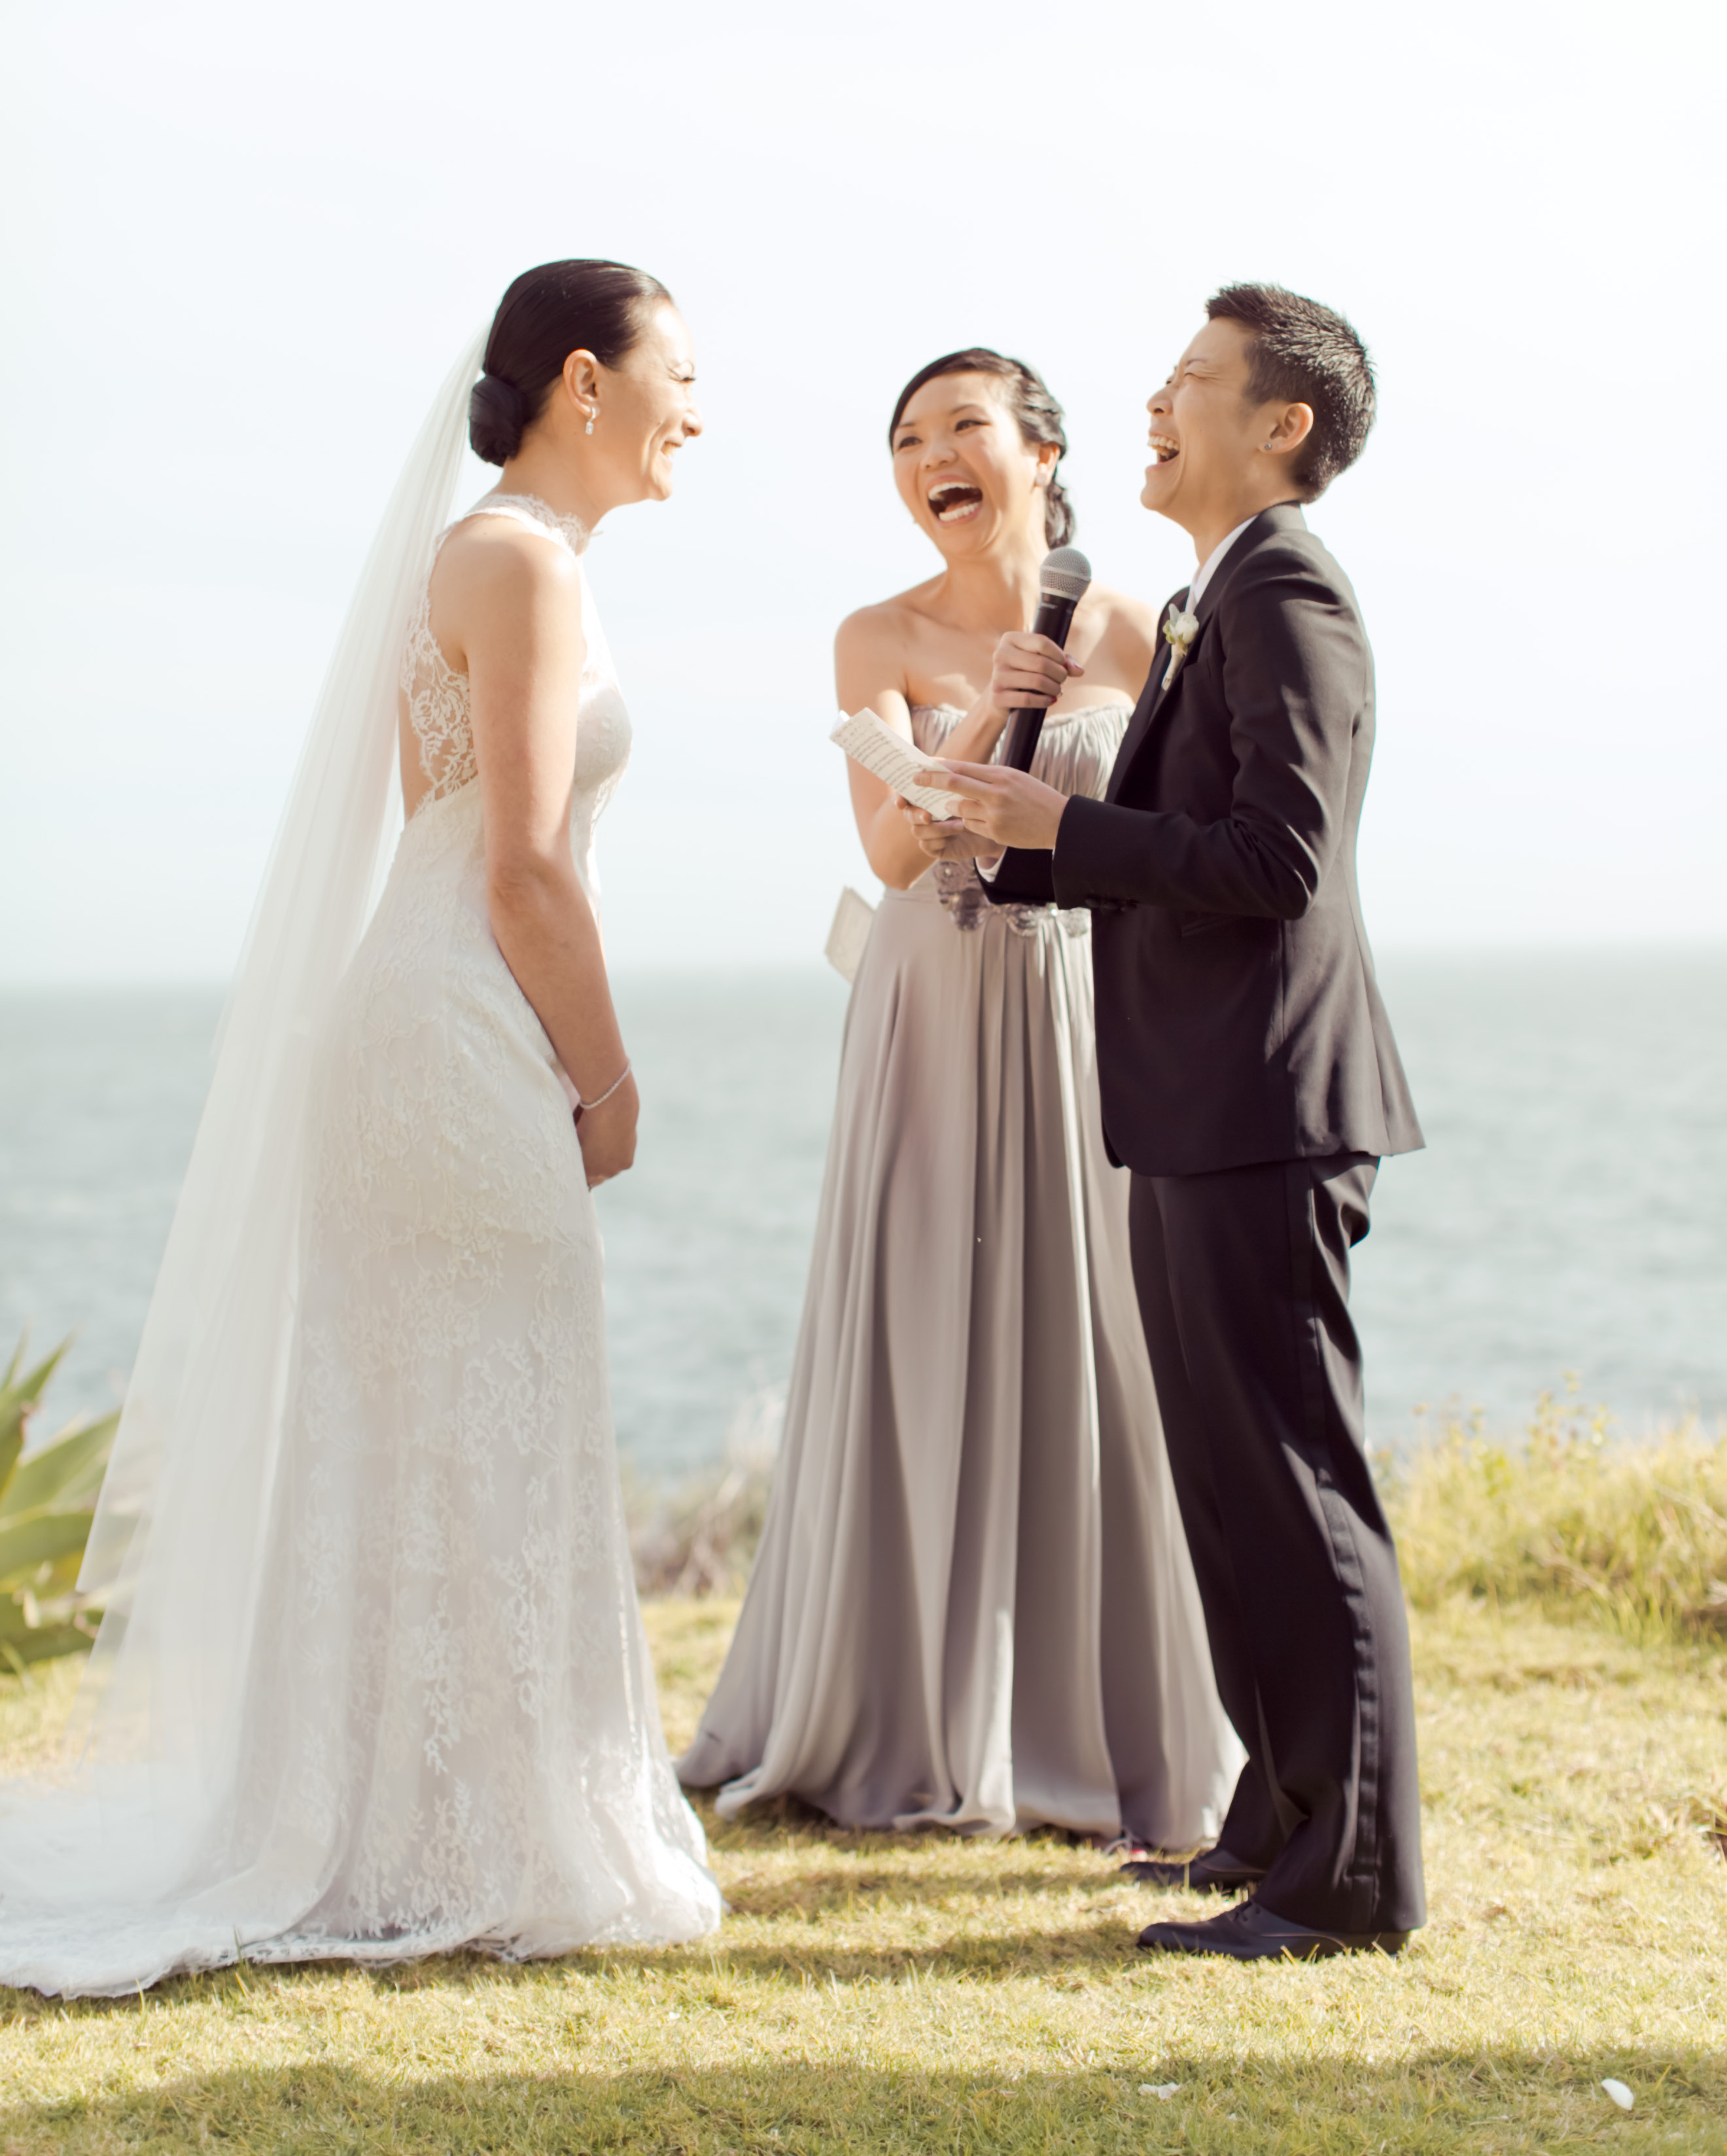 Wedding Ceremony Sites: Unique Wedding Vows For The Modern Couple